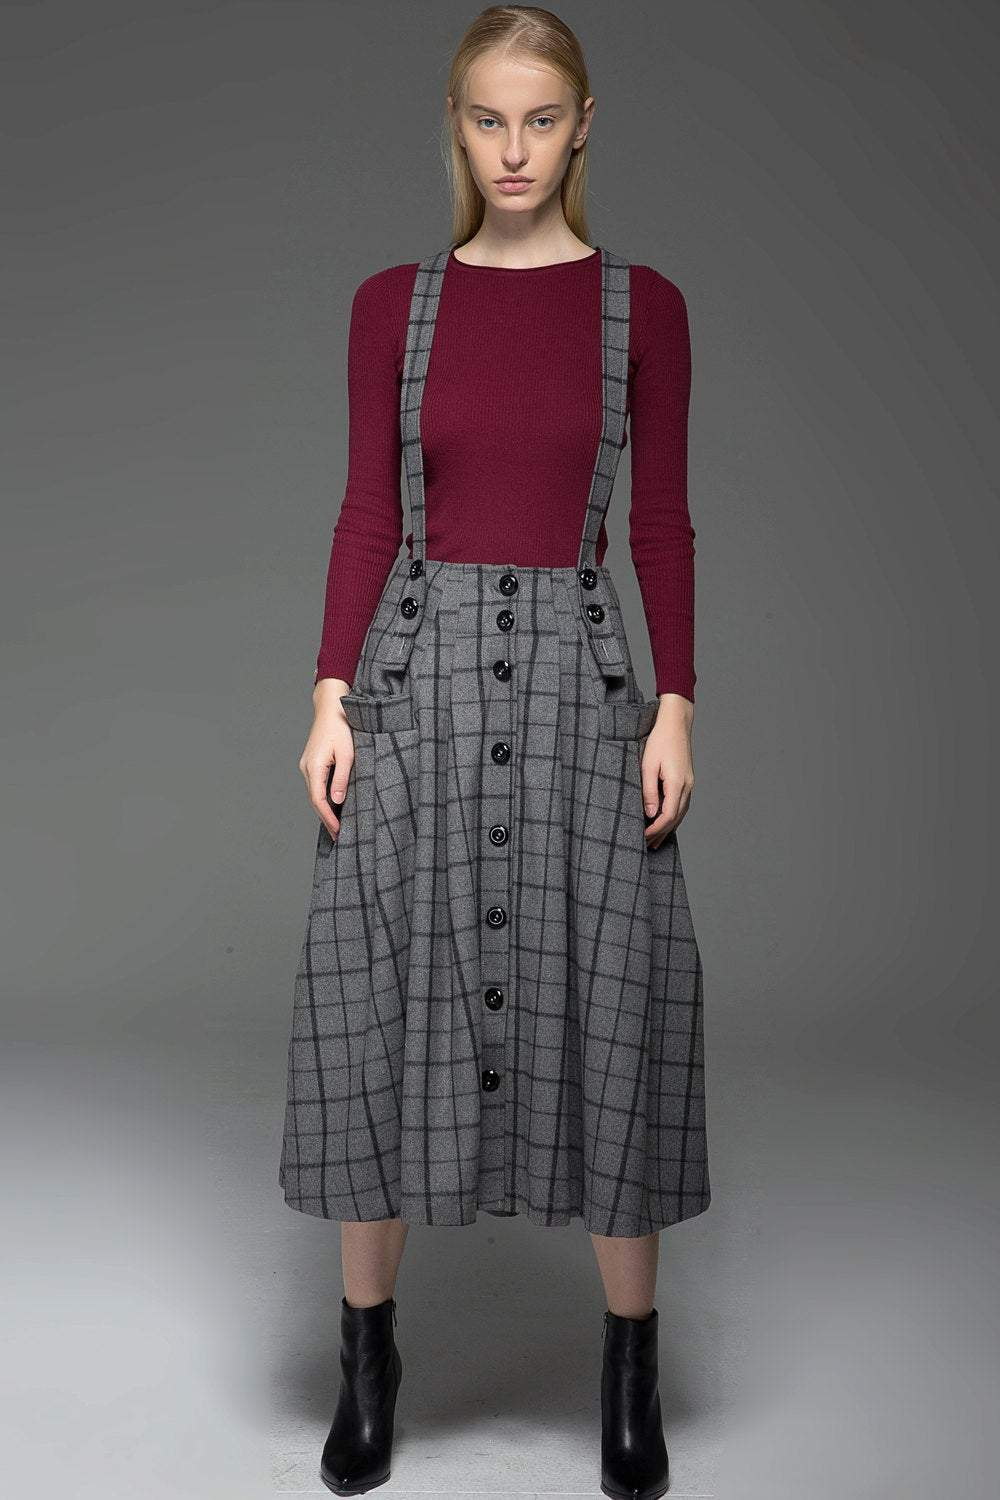 plaid skirt, Suspender skirt, wool plaid skirt, long skirt, buttons skirt, country style skirt, grey skirt, gray skirt, womens skirts C767